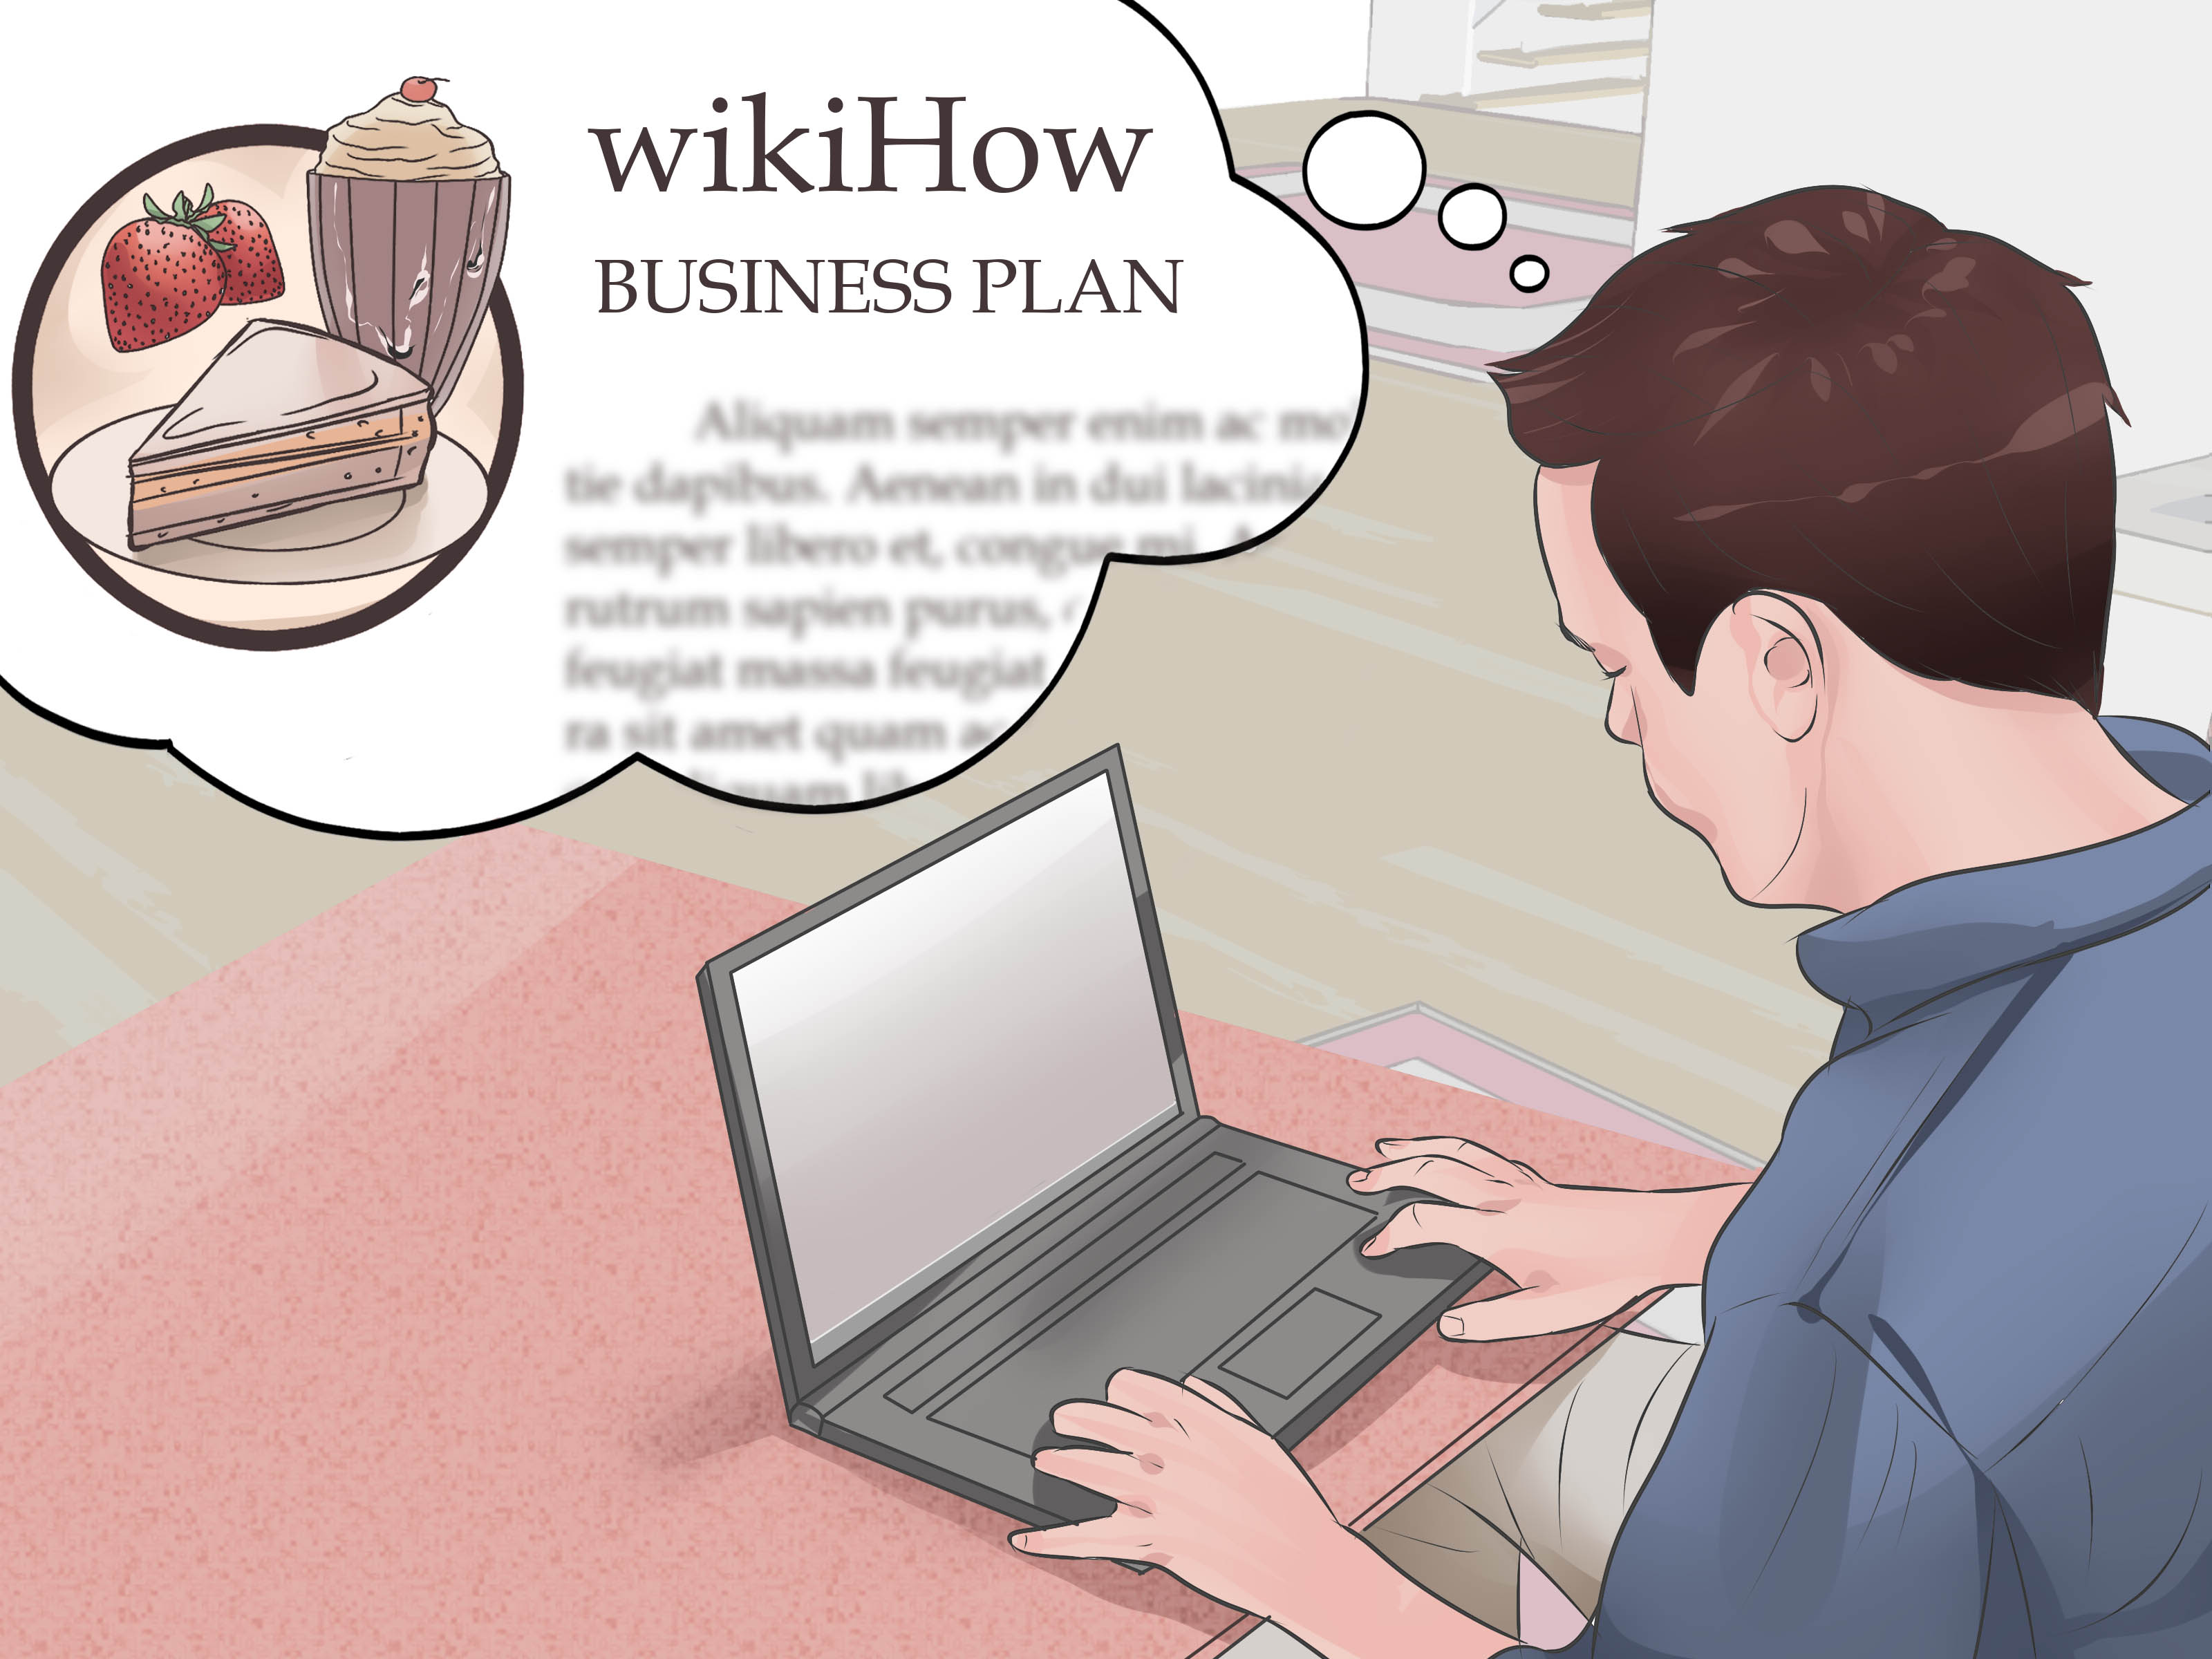 Business Step How To Write A Business Plan For A Small Business 14 Steps